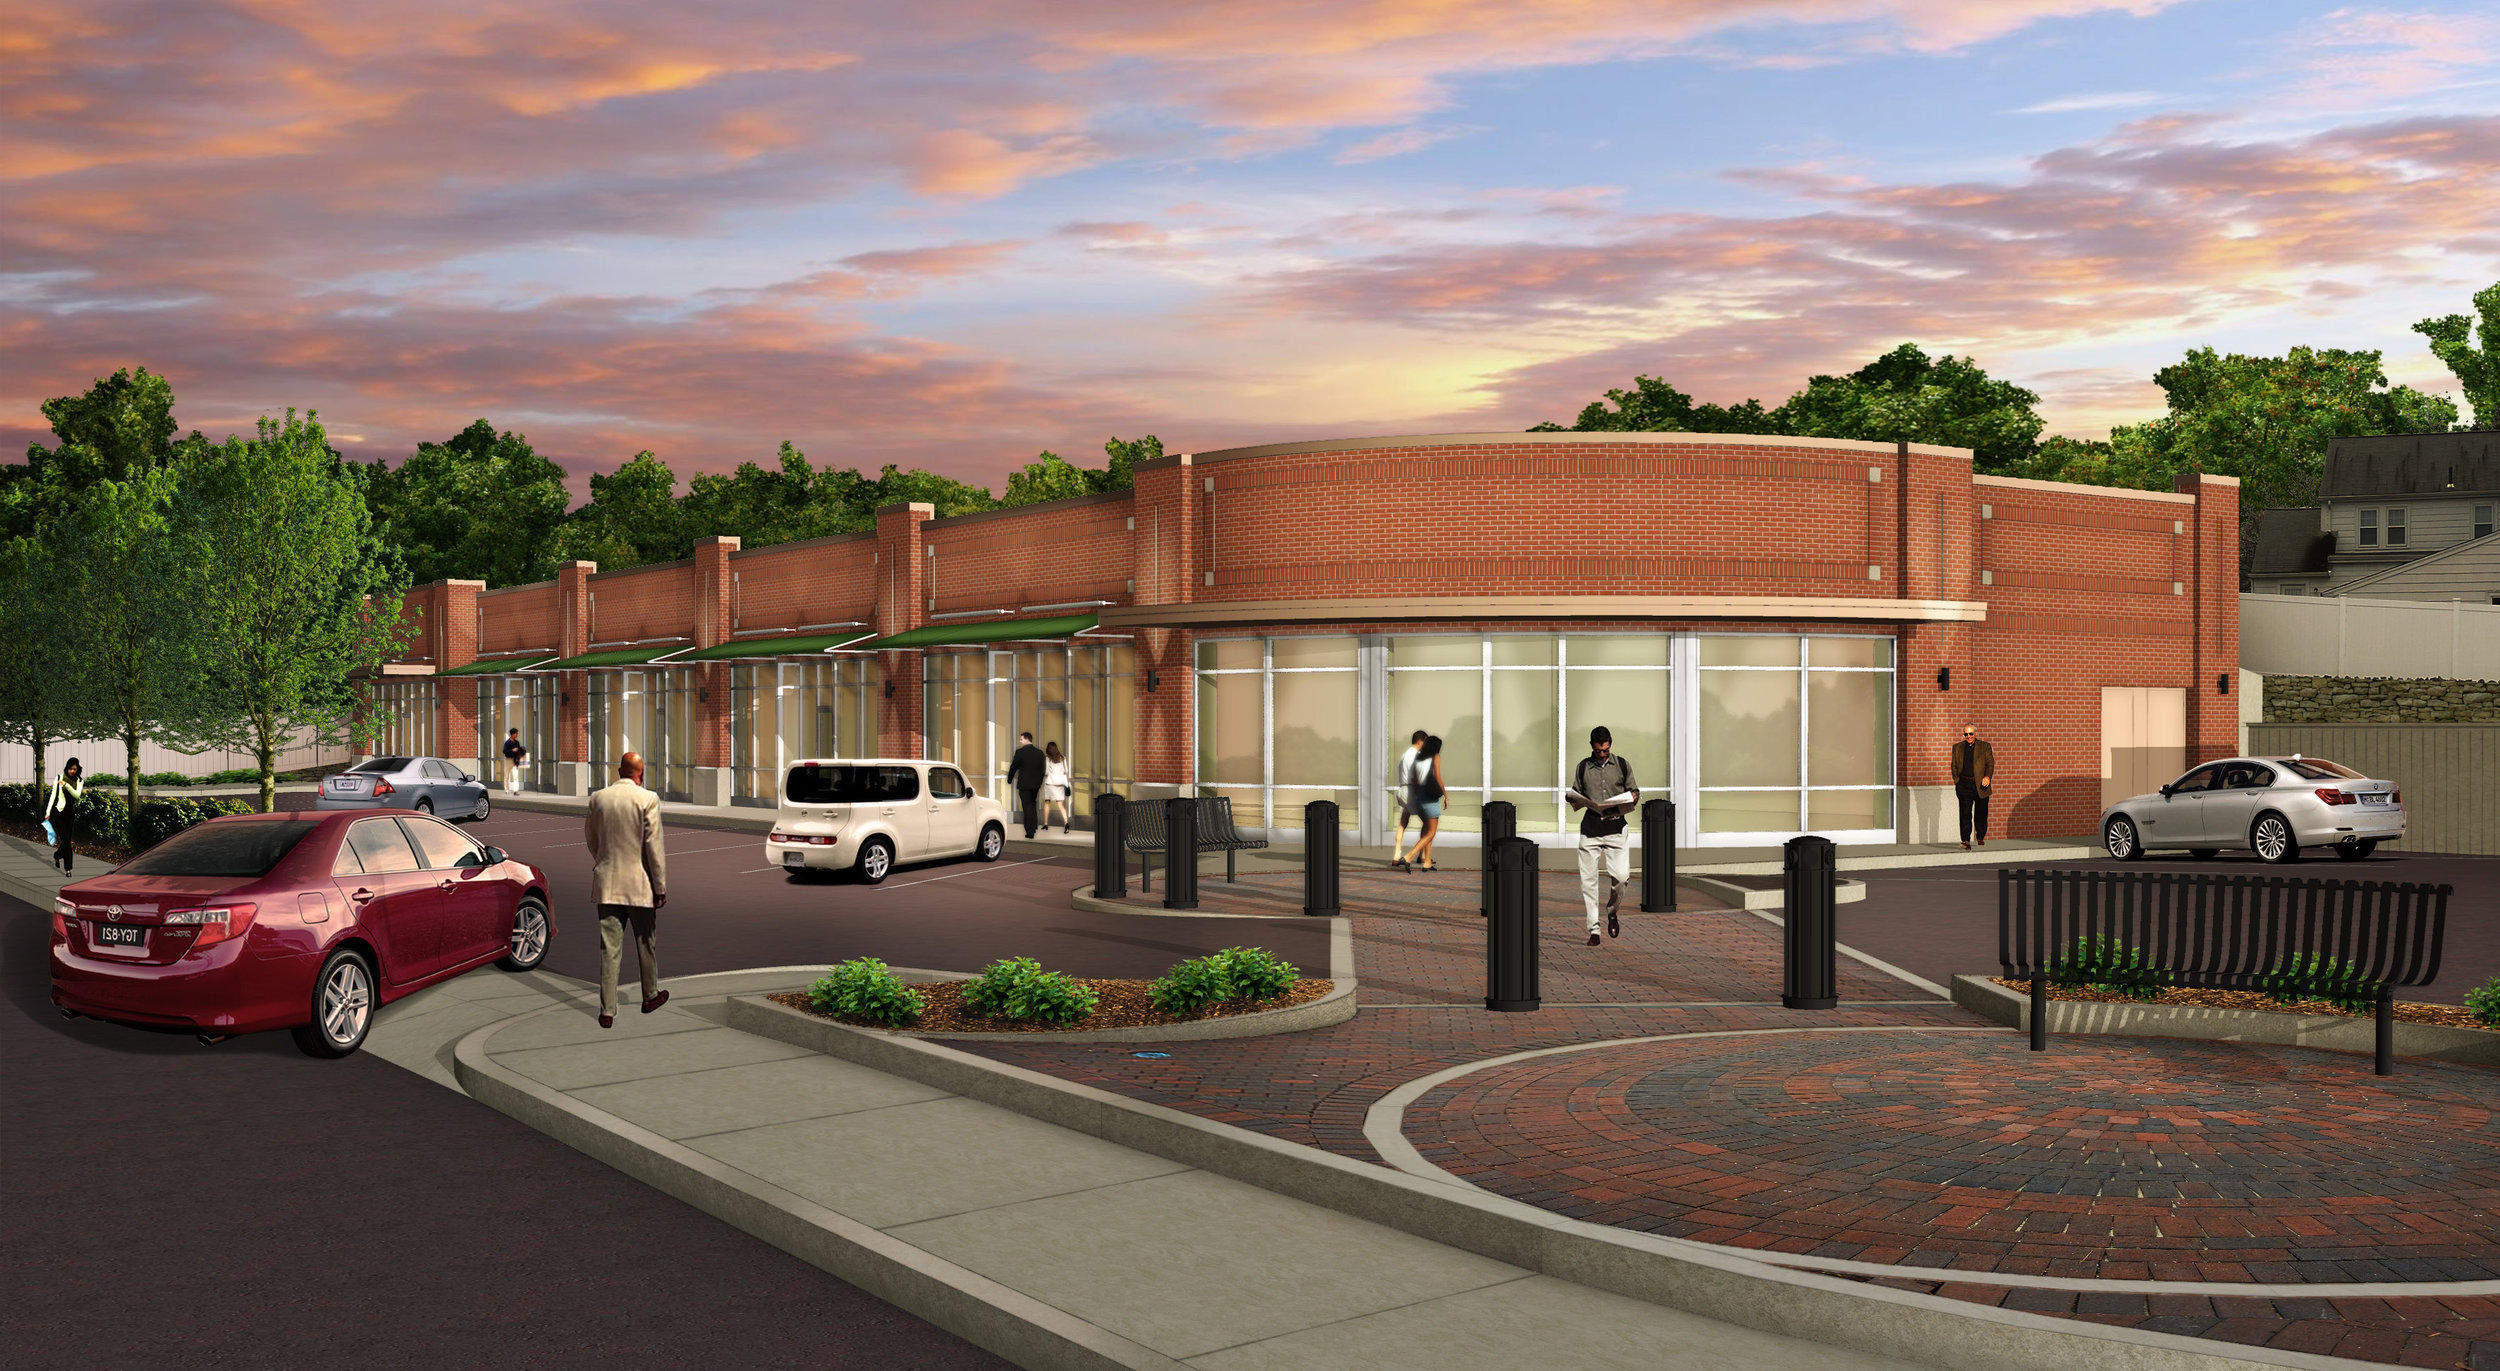 70-Concord-Ave-Rendering-HDS-Architecture.jpg